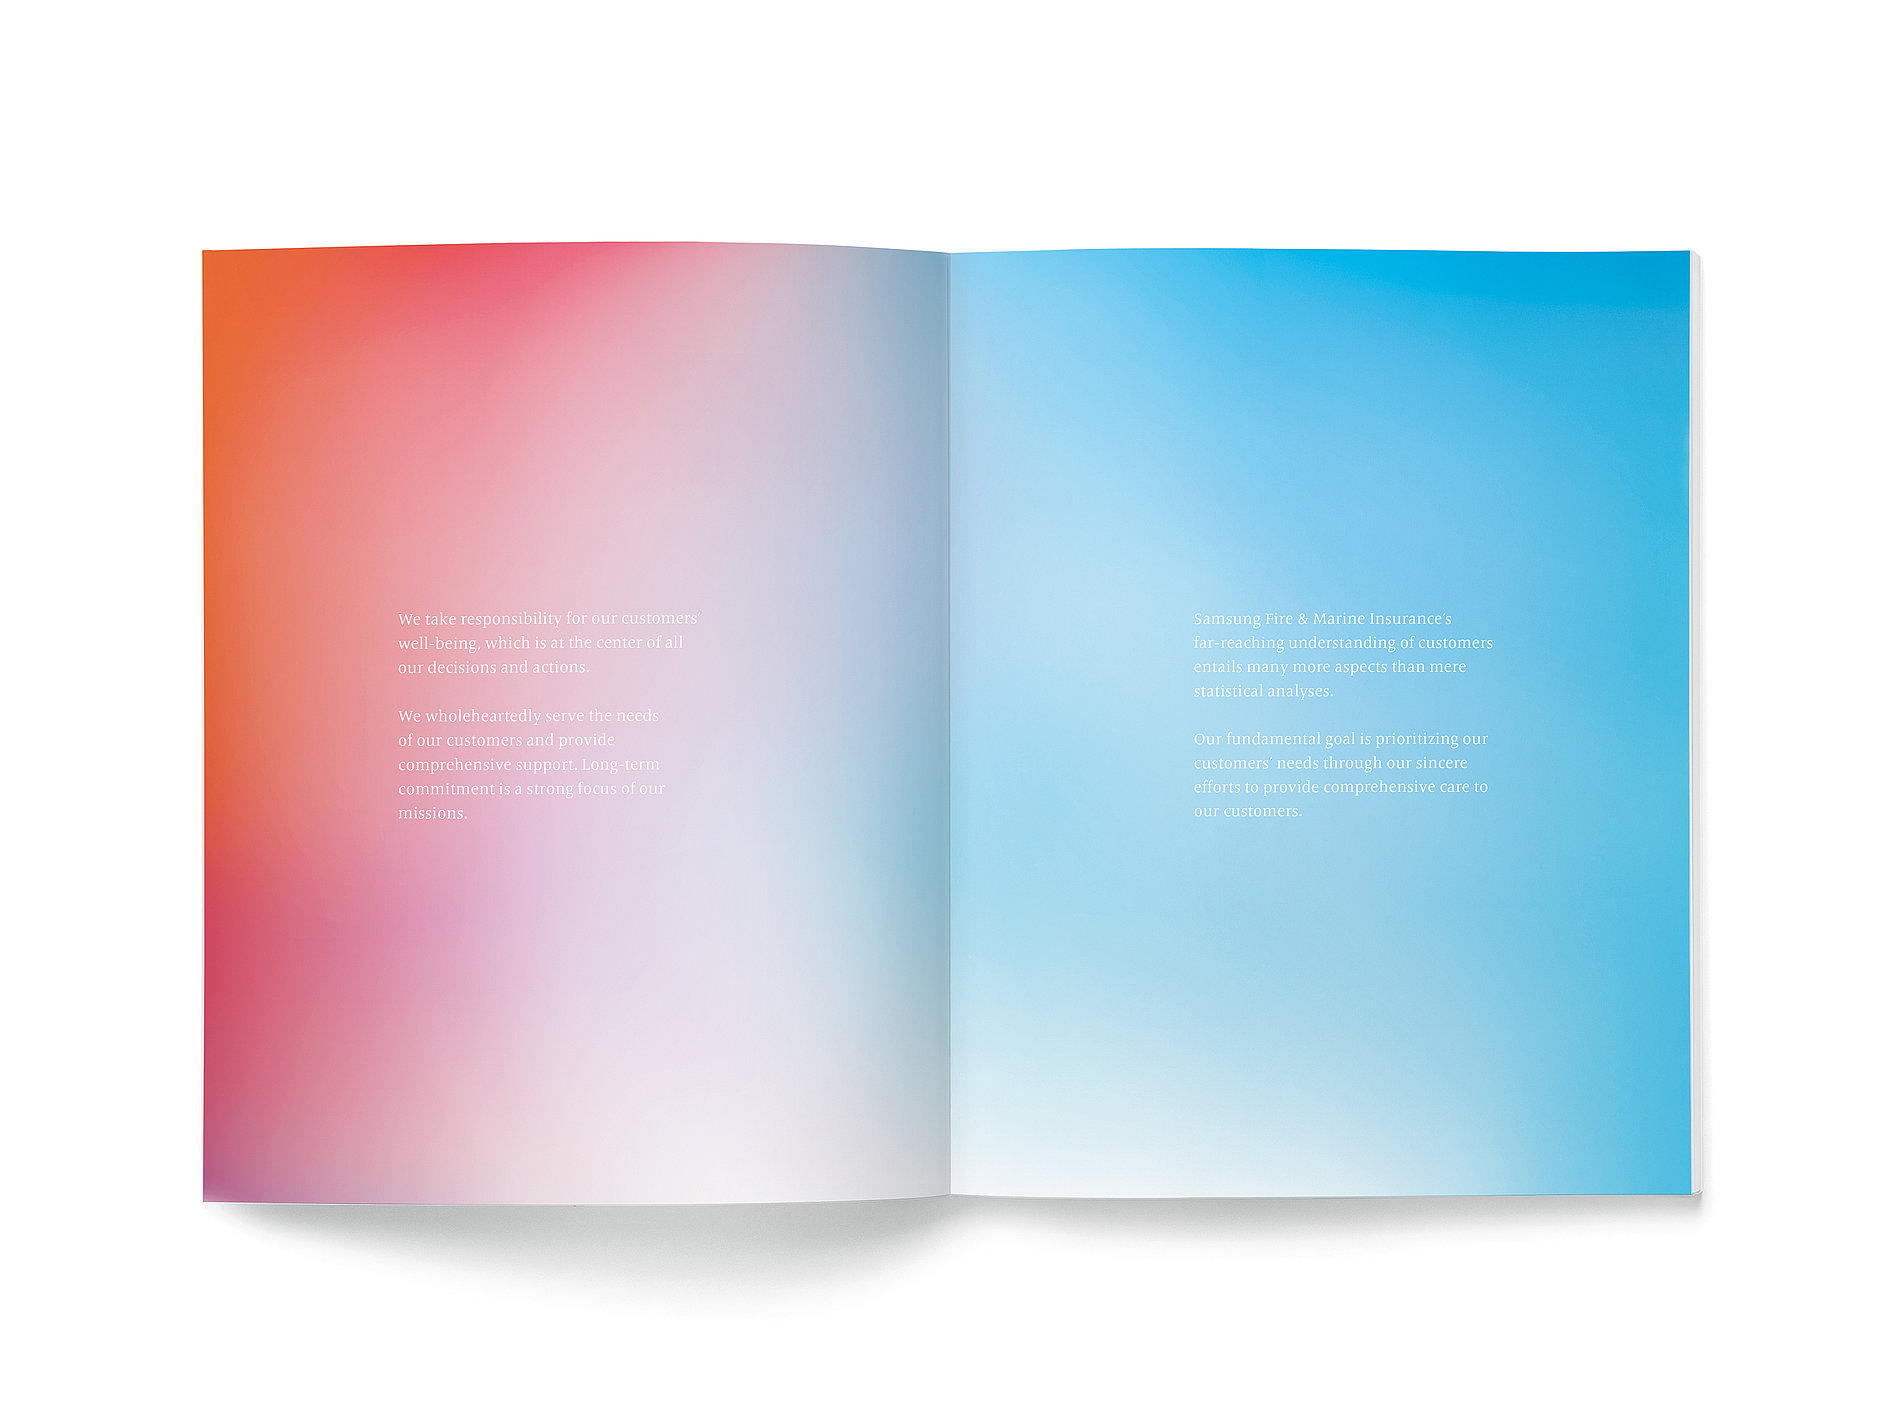 Samsung Fire & Marine Insurance Annual Report 2016 | Red Dot Design Award